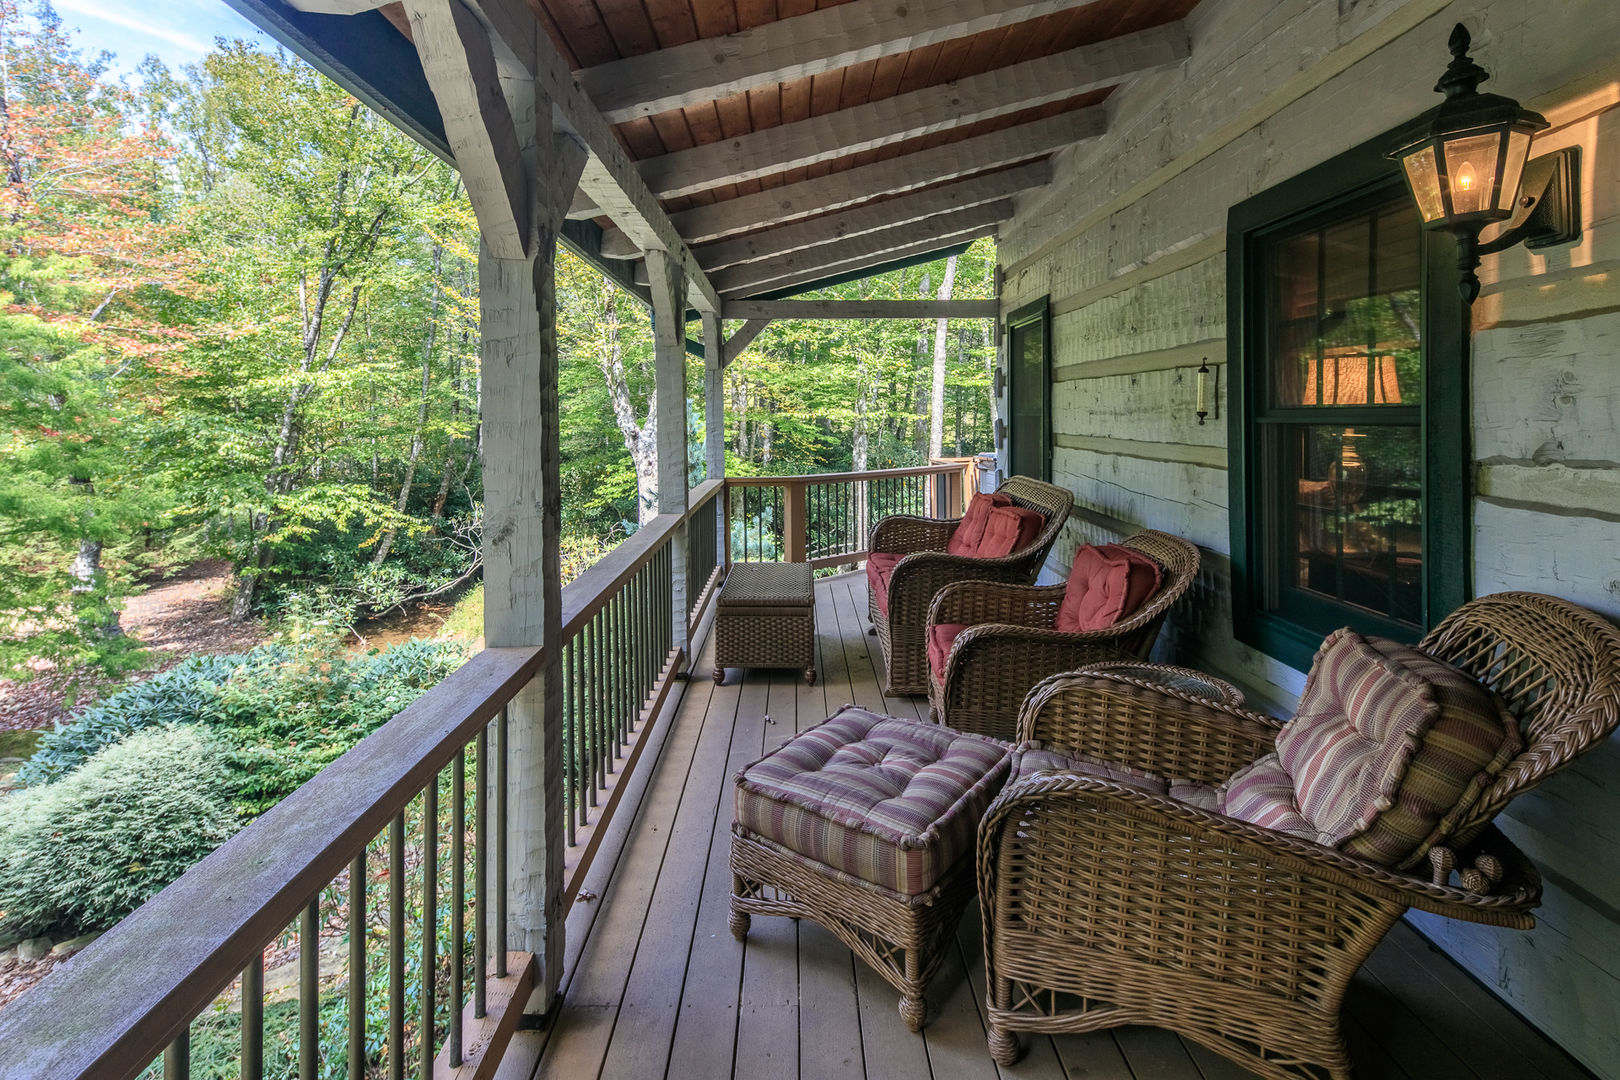 Or sit in the comfy wicker chairs.  Almost Perfect in Blowing Rock, NC.